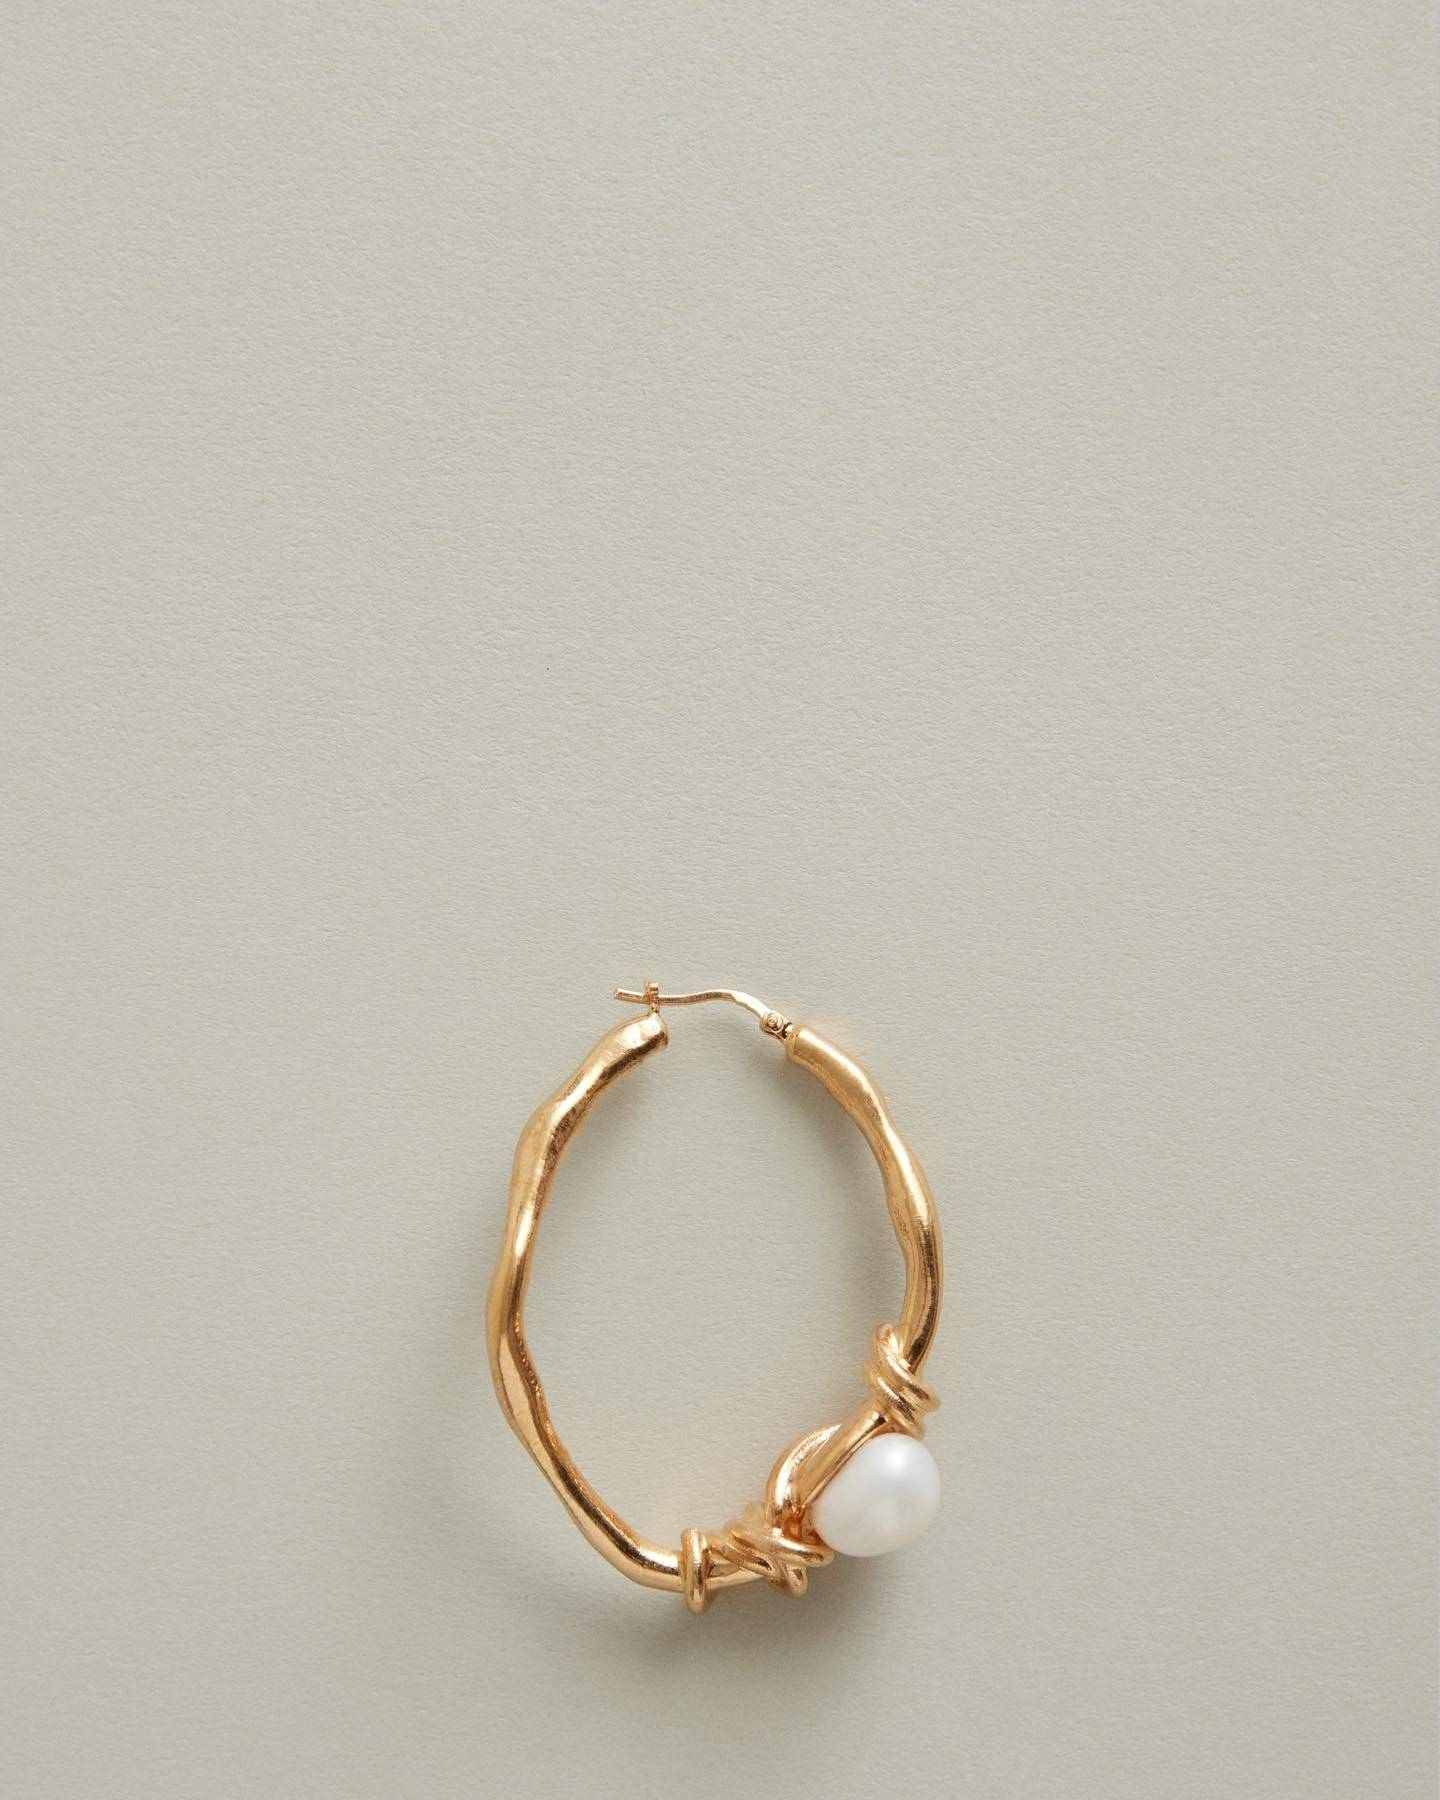 /products/allison-single-creole-earring-with-baroque-pearl